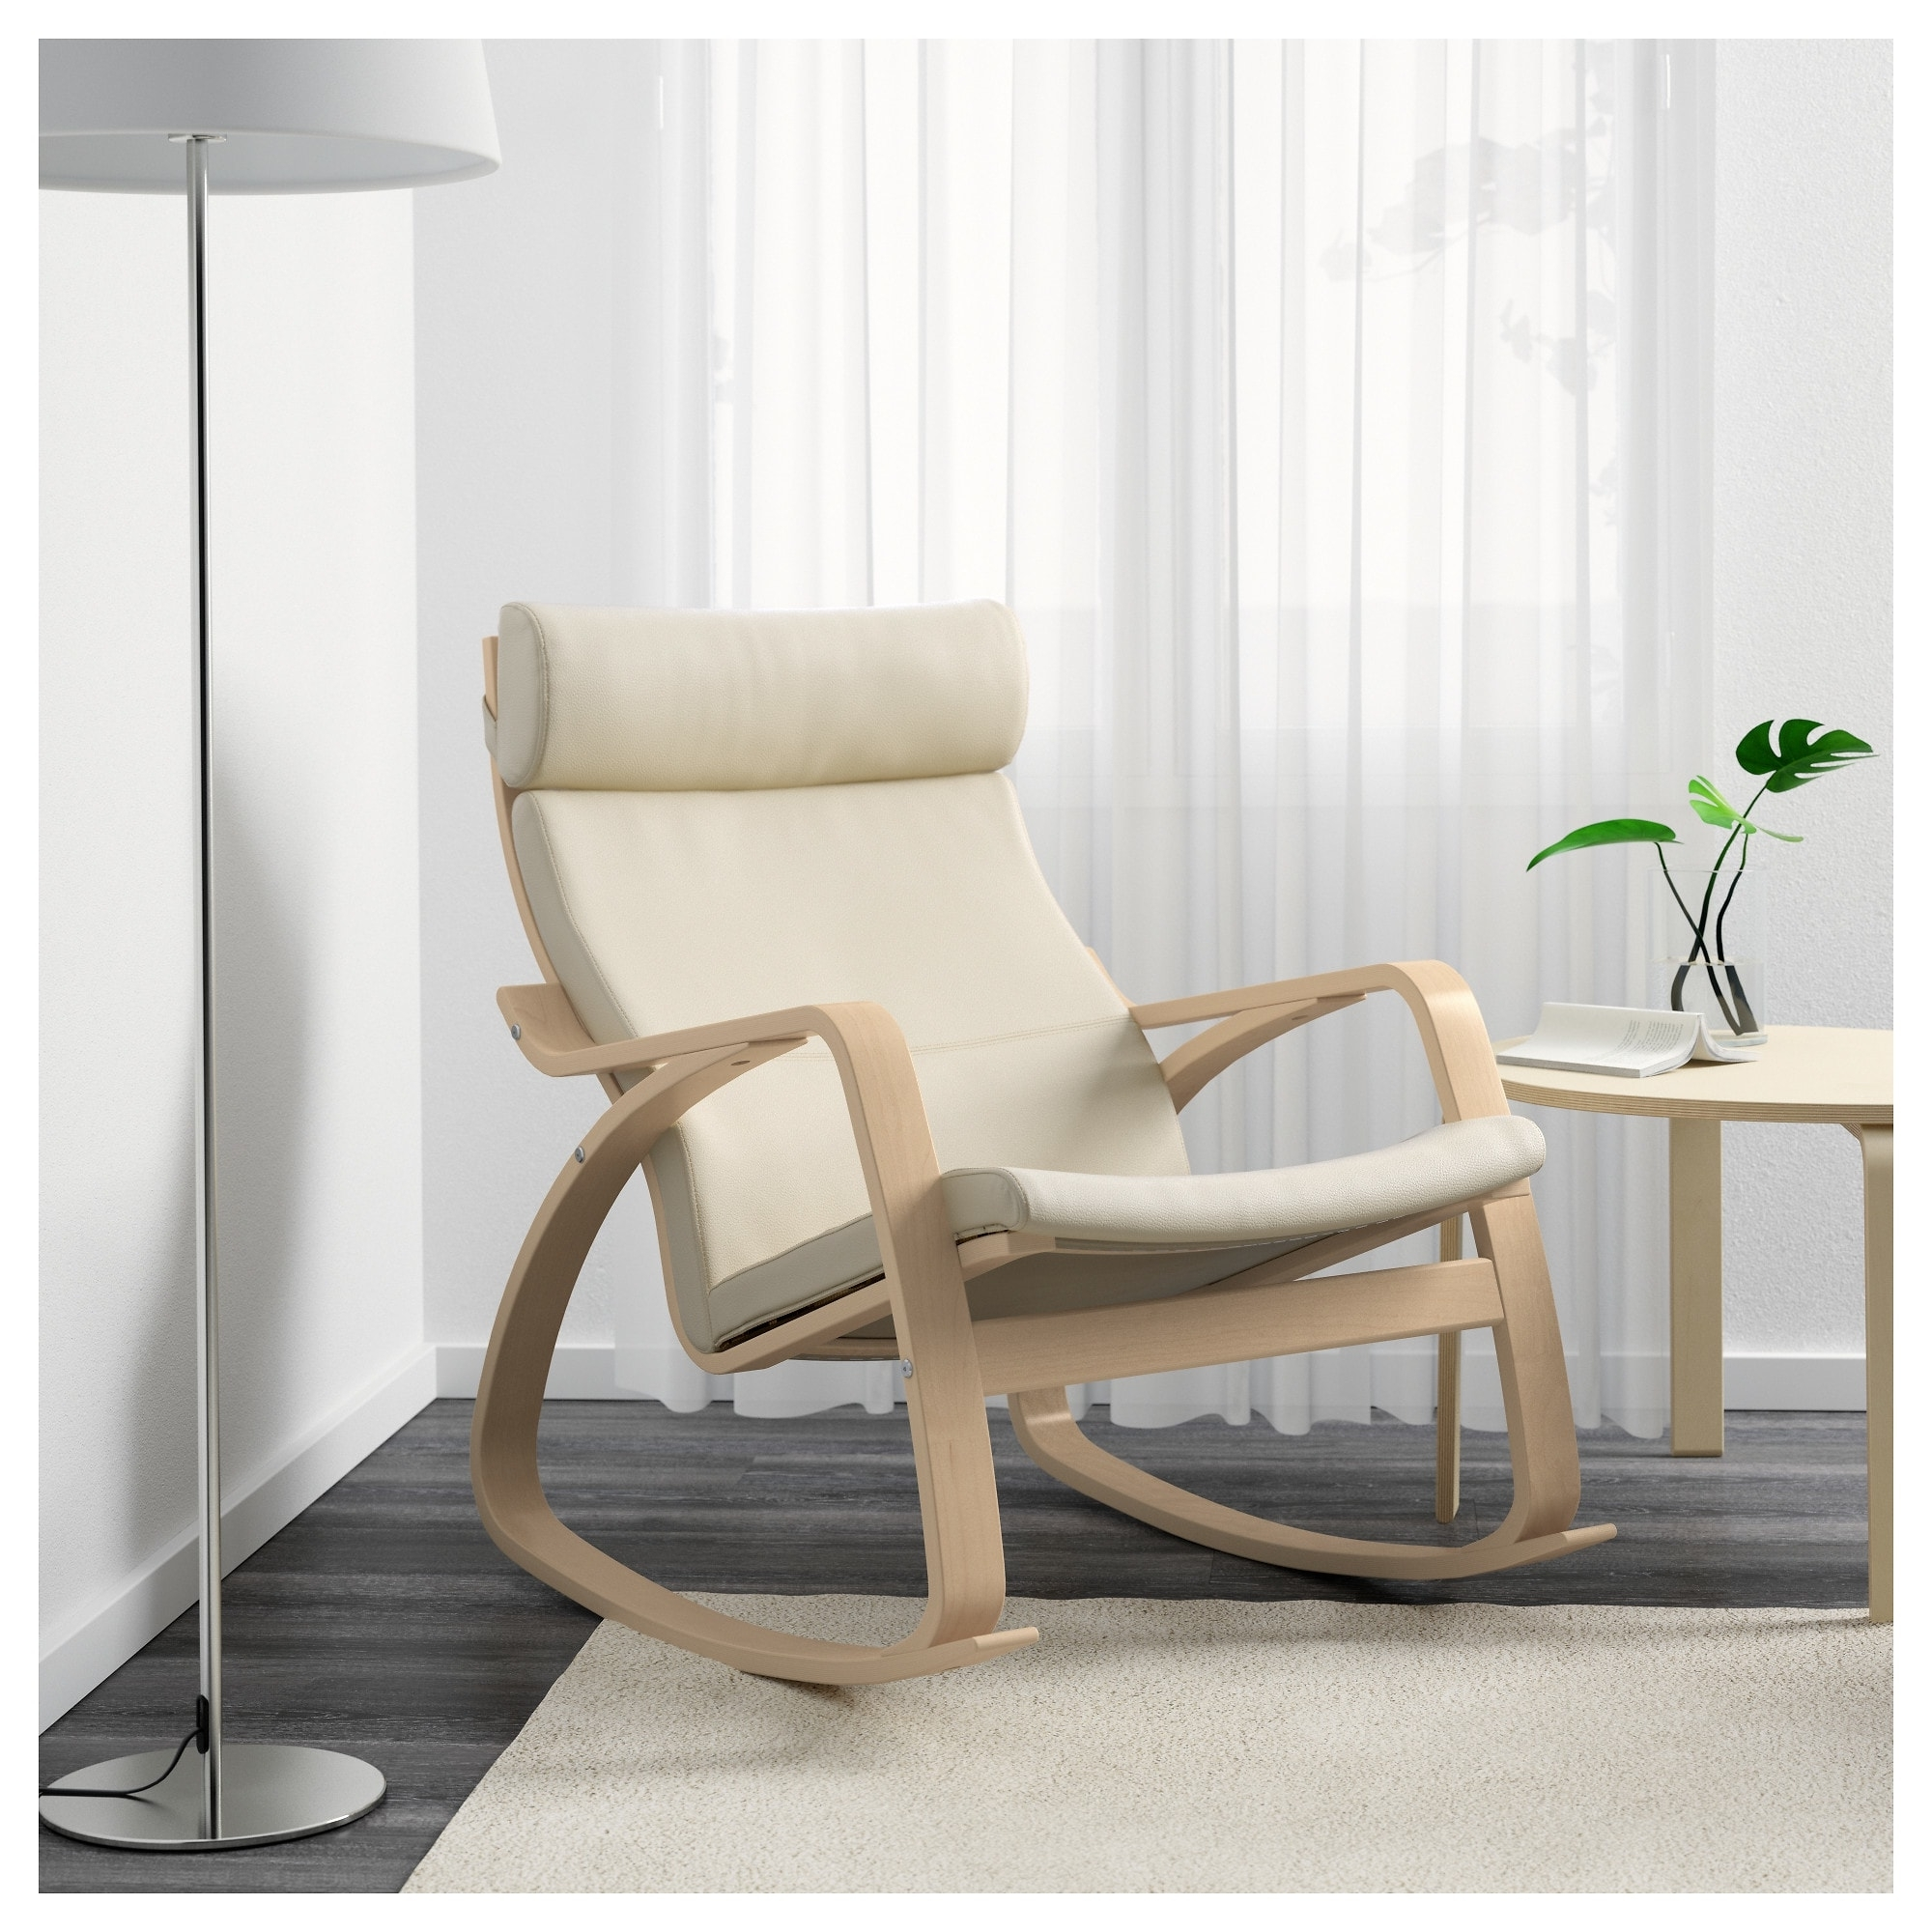 Widely Used Poäng Rocking Chair – Glose Dark Brown – Ikea For Rocking Chairs At Ikea (View 2 of 15)